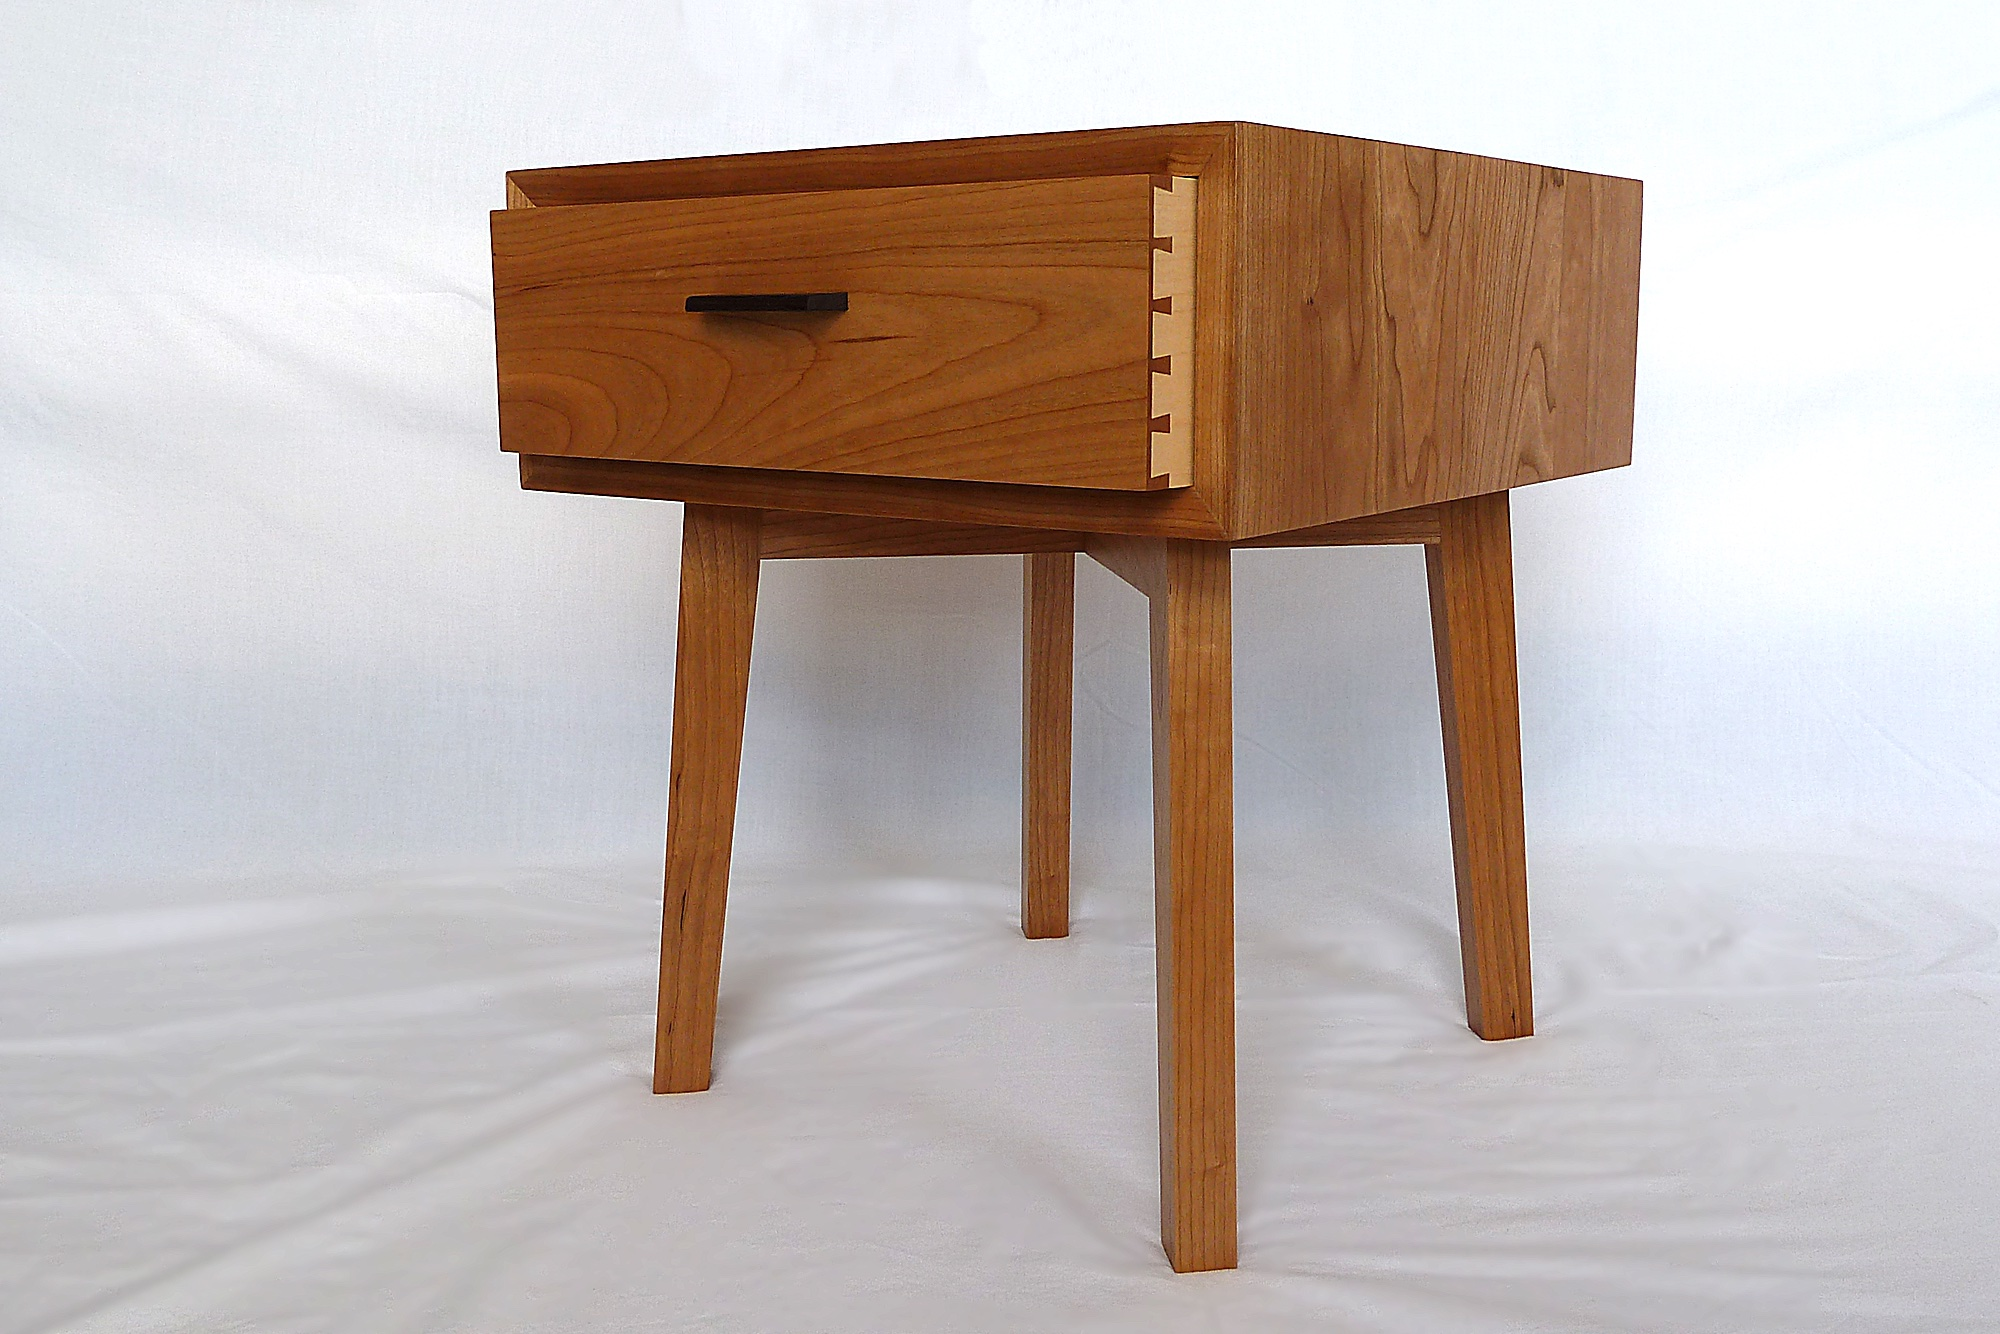 Cherry bedside table with dovetailed drawer